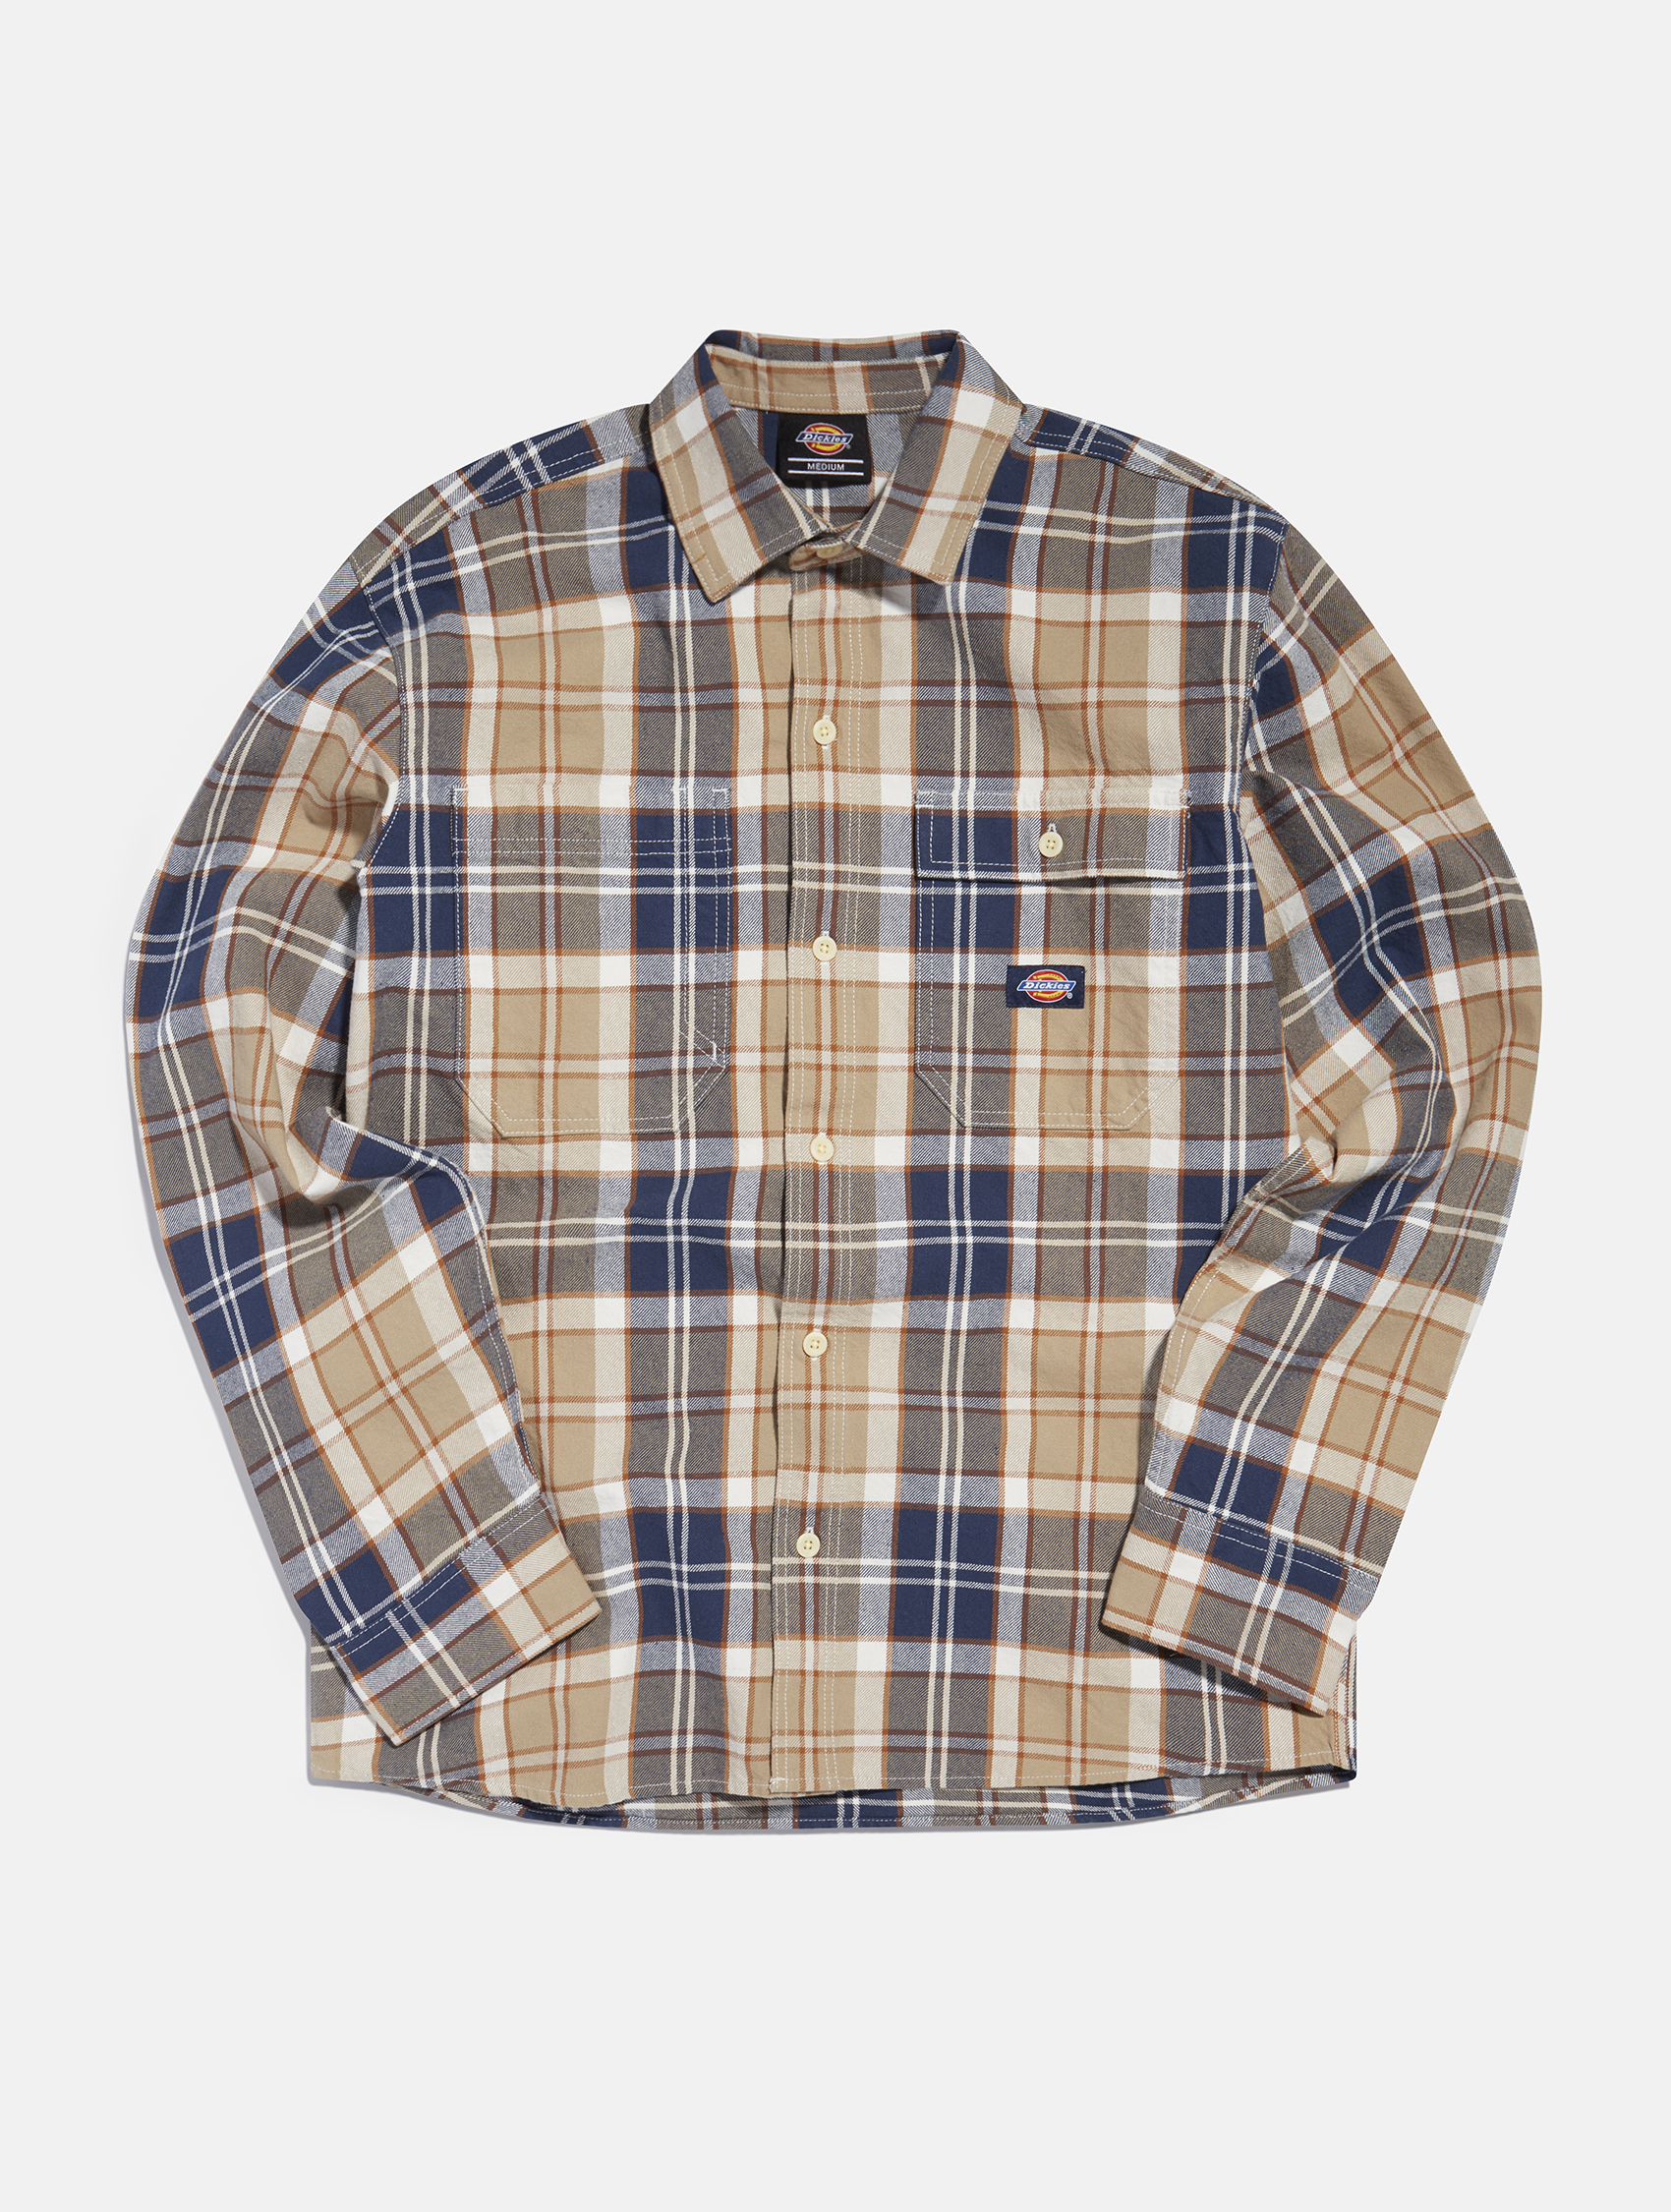 Dickies Long sleeve blue and light brown checkered shirt